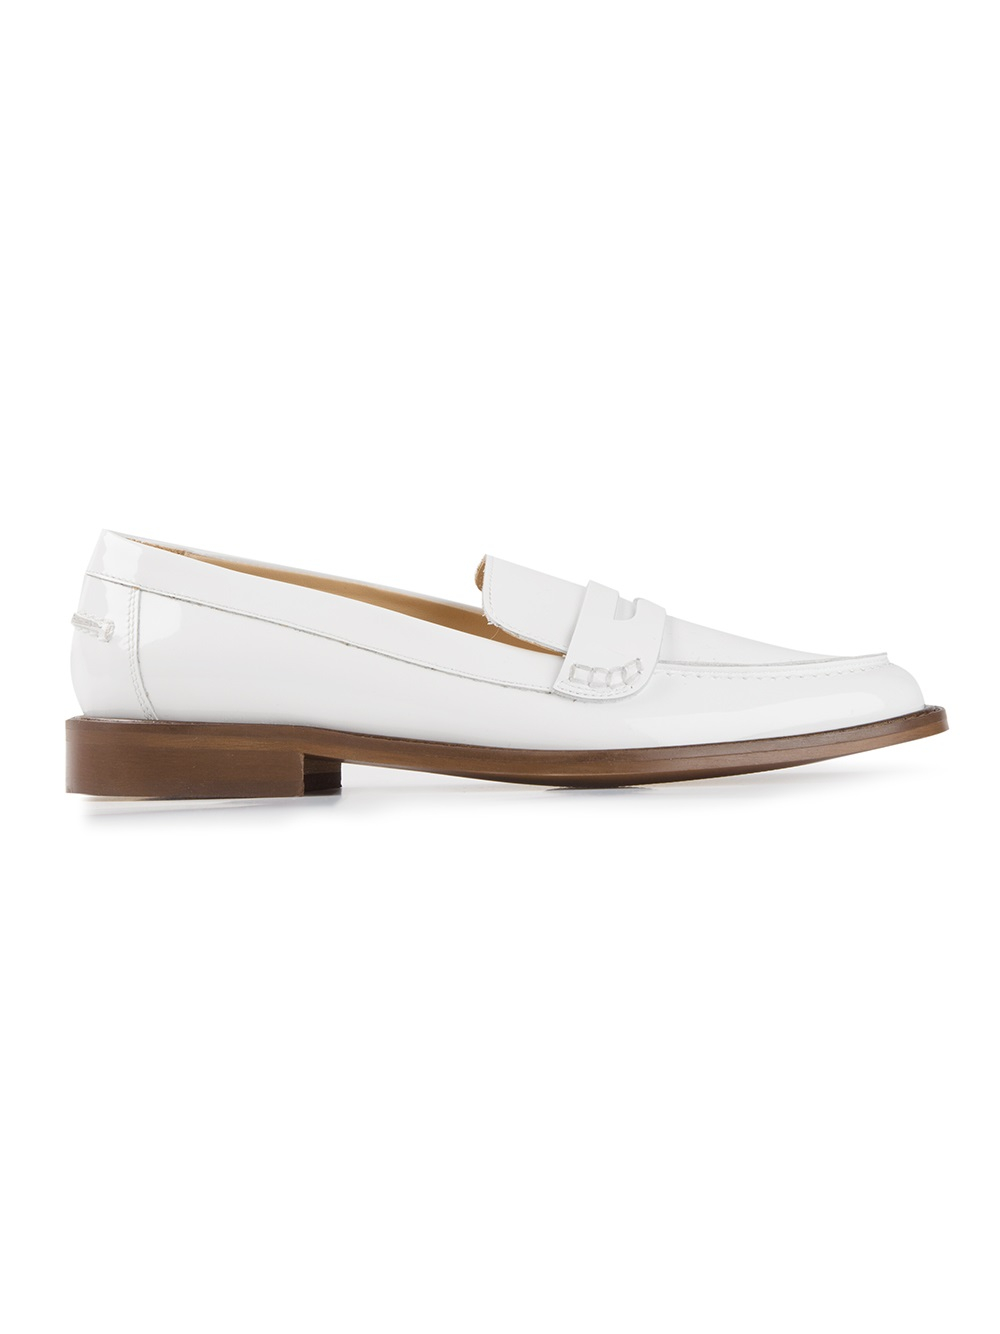 a17ca7a6bff Whyred 'Justina' Loafers in White - Lyst